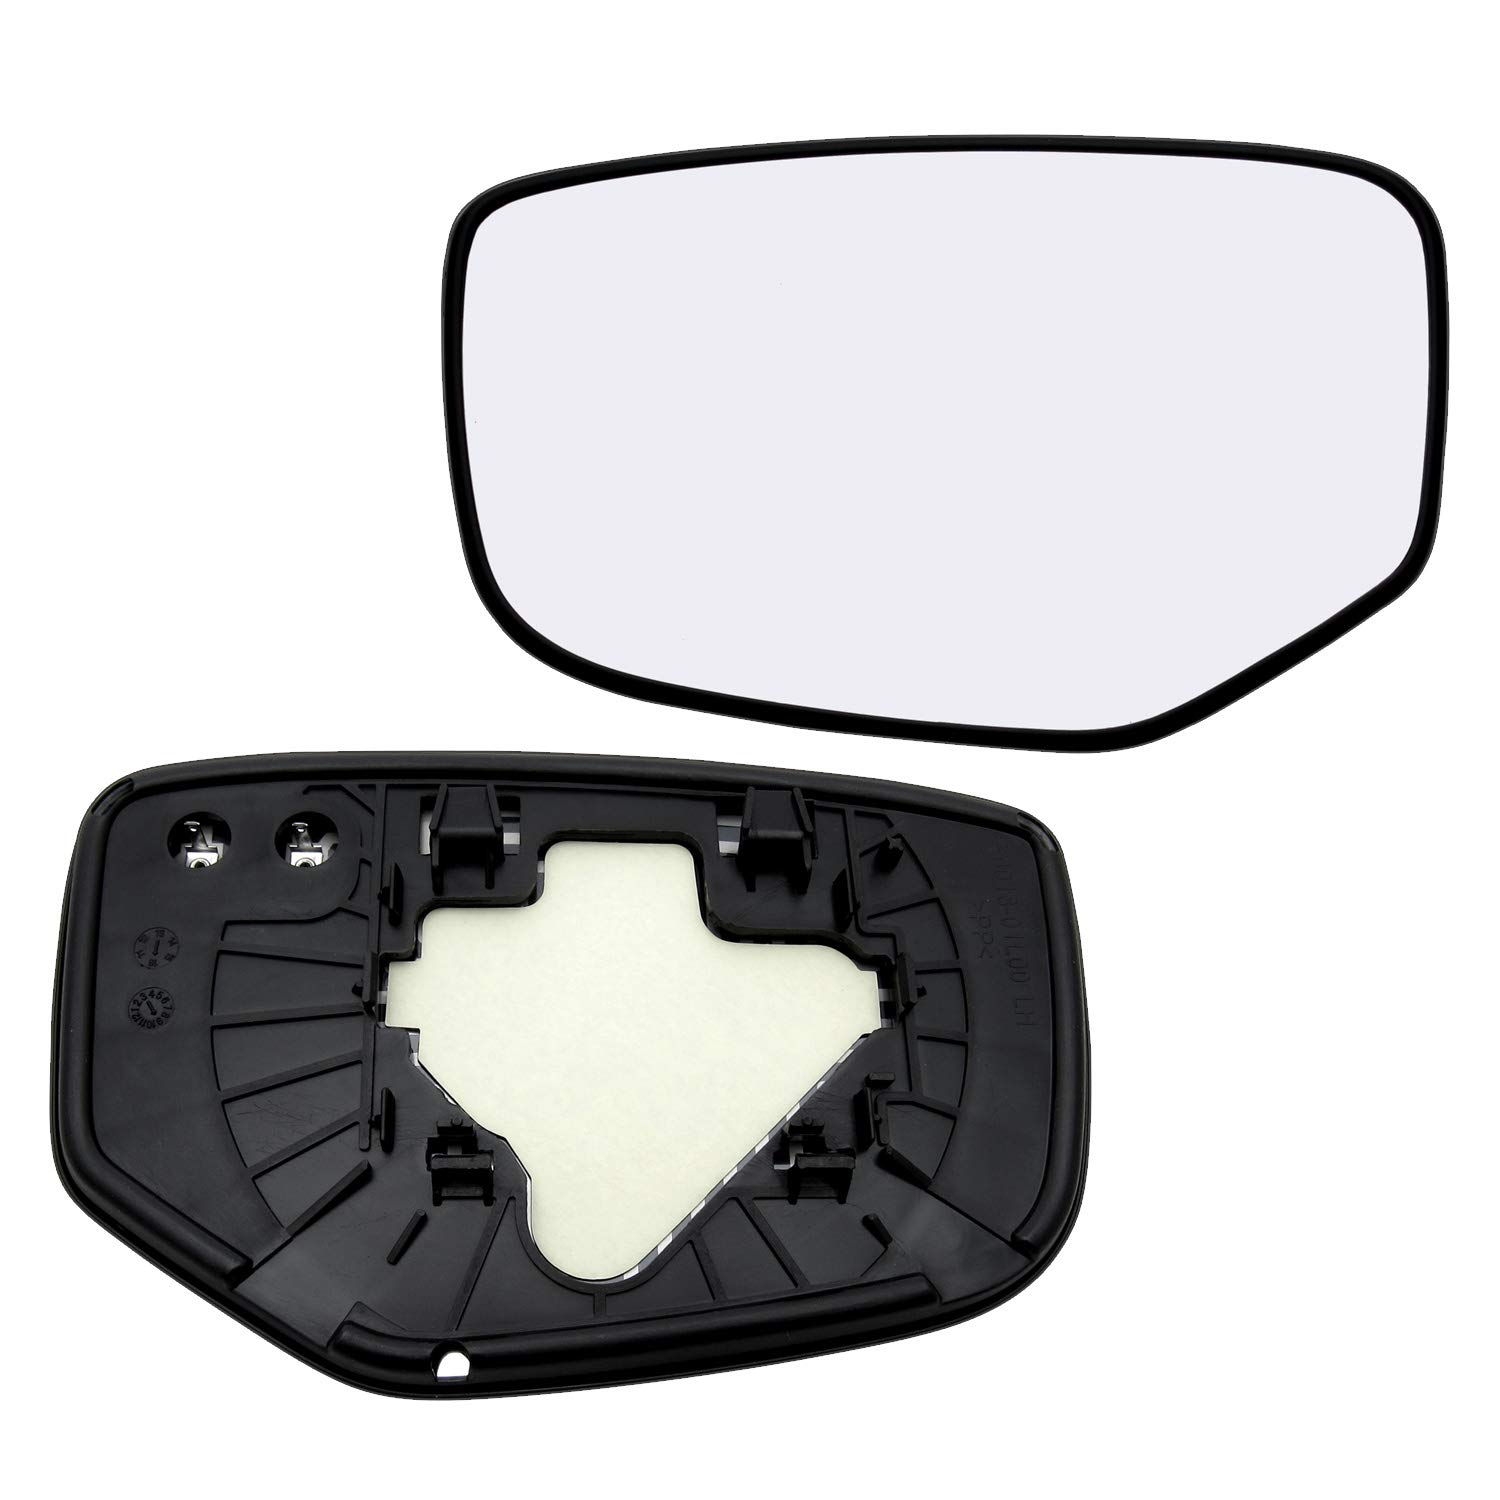 New Replacement Driver Side Mirror Heated Glass W Backing Compatible With 2008-2012 Honda Accord Sold By Rugged TUFF